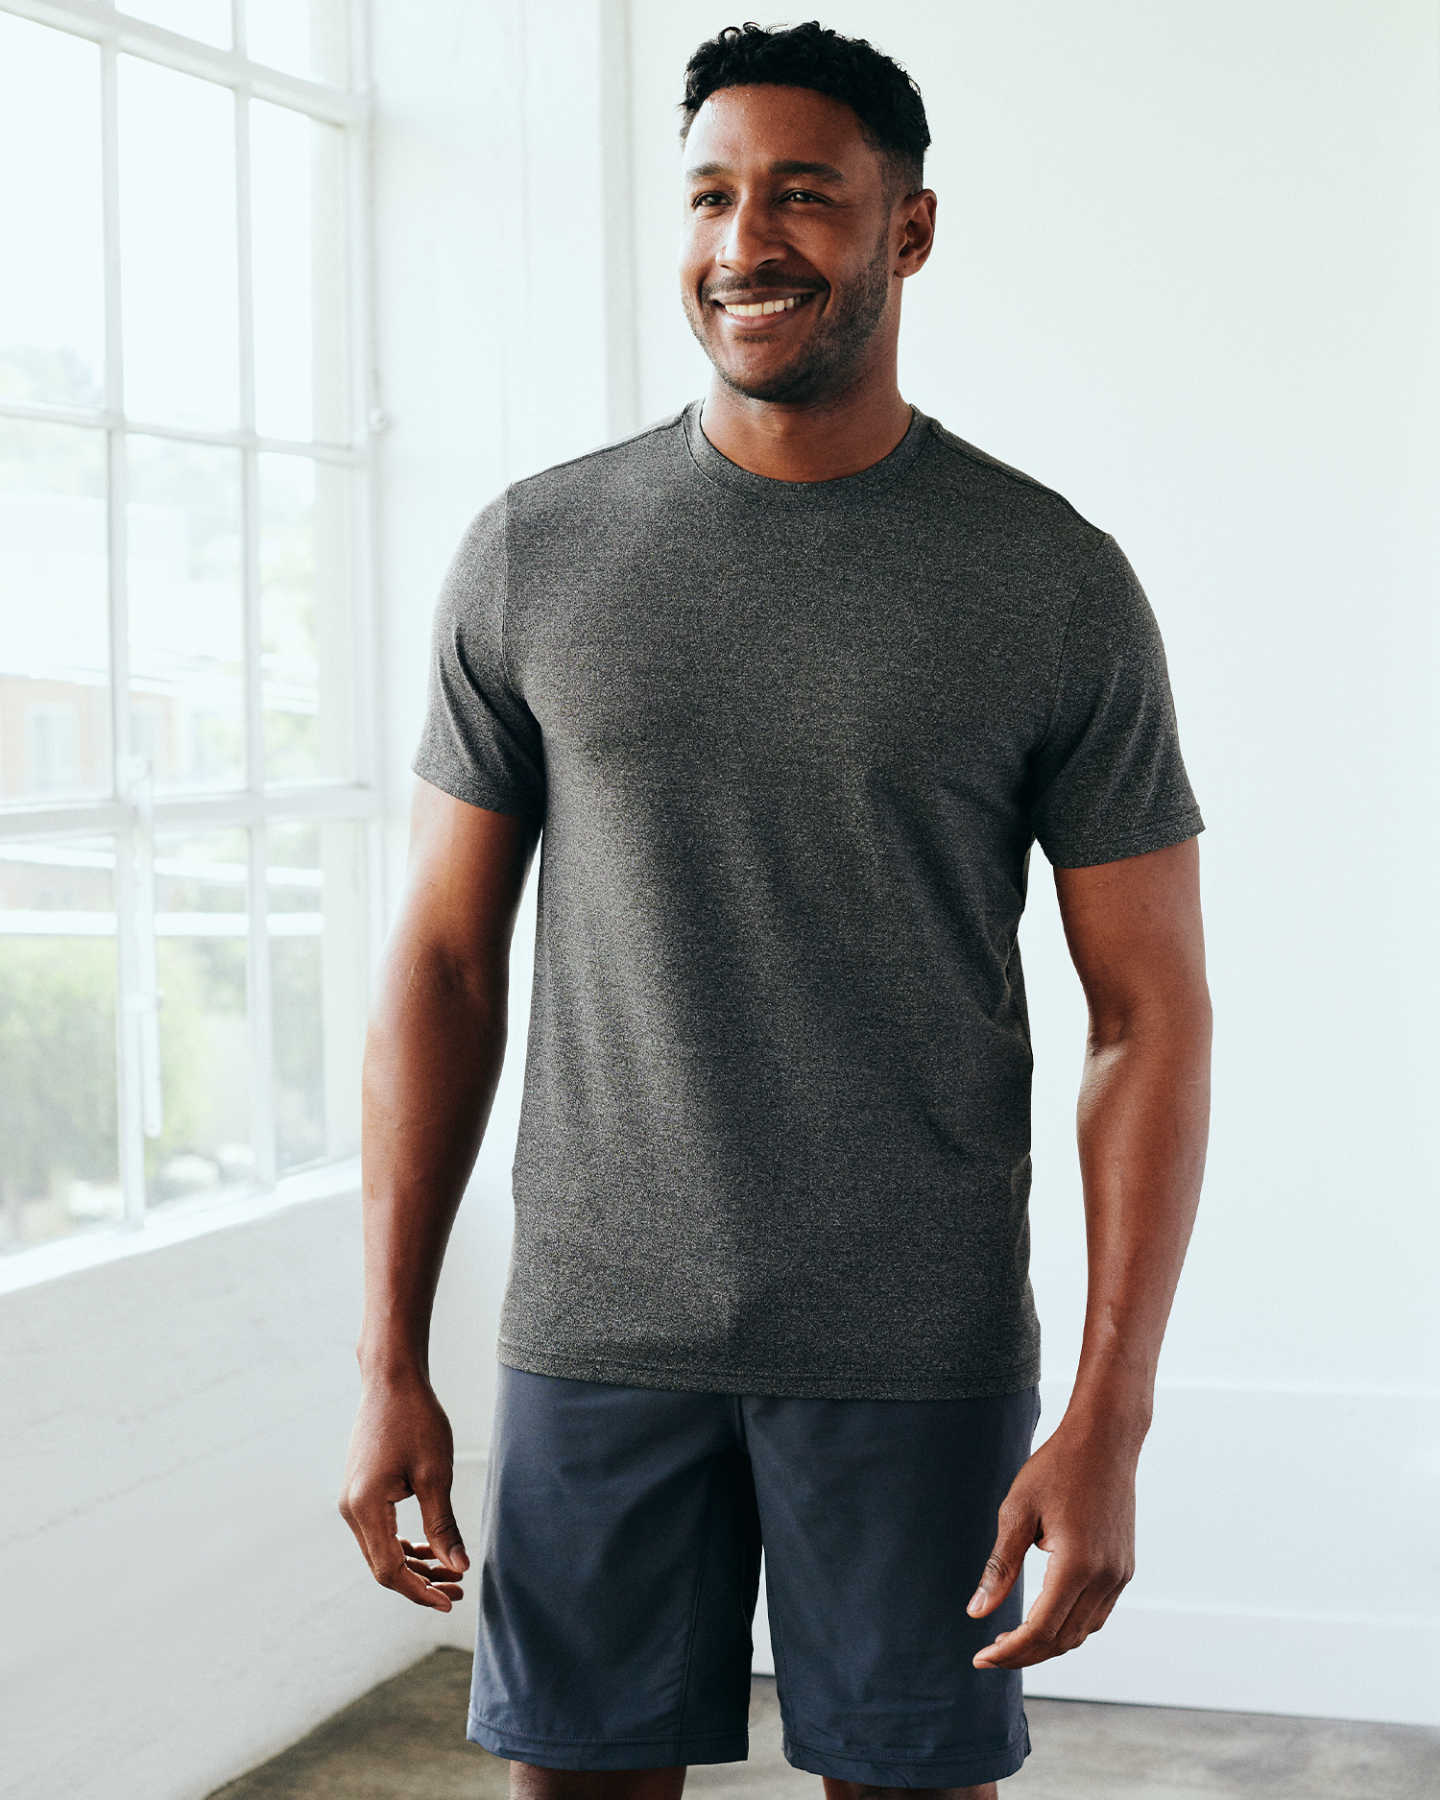 Flowknit Ultra-Soft Performance Tee - Charcoal